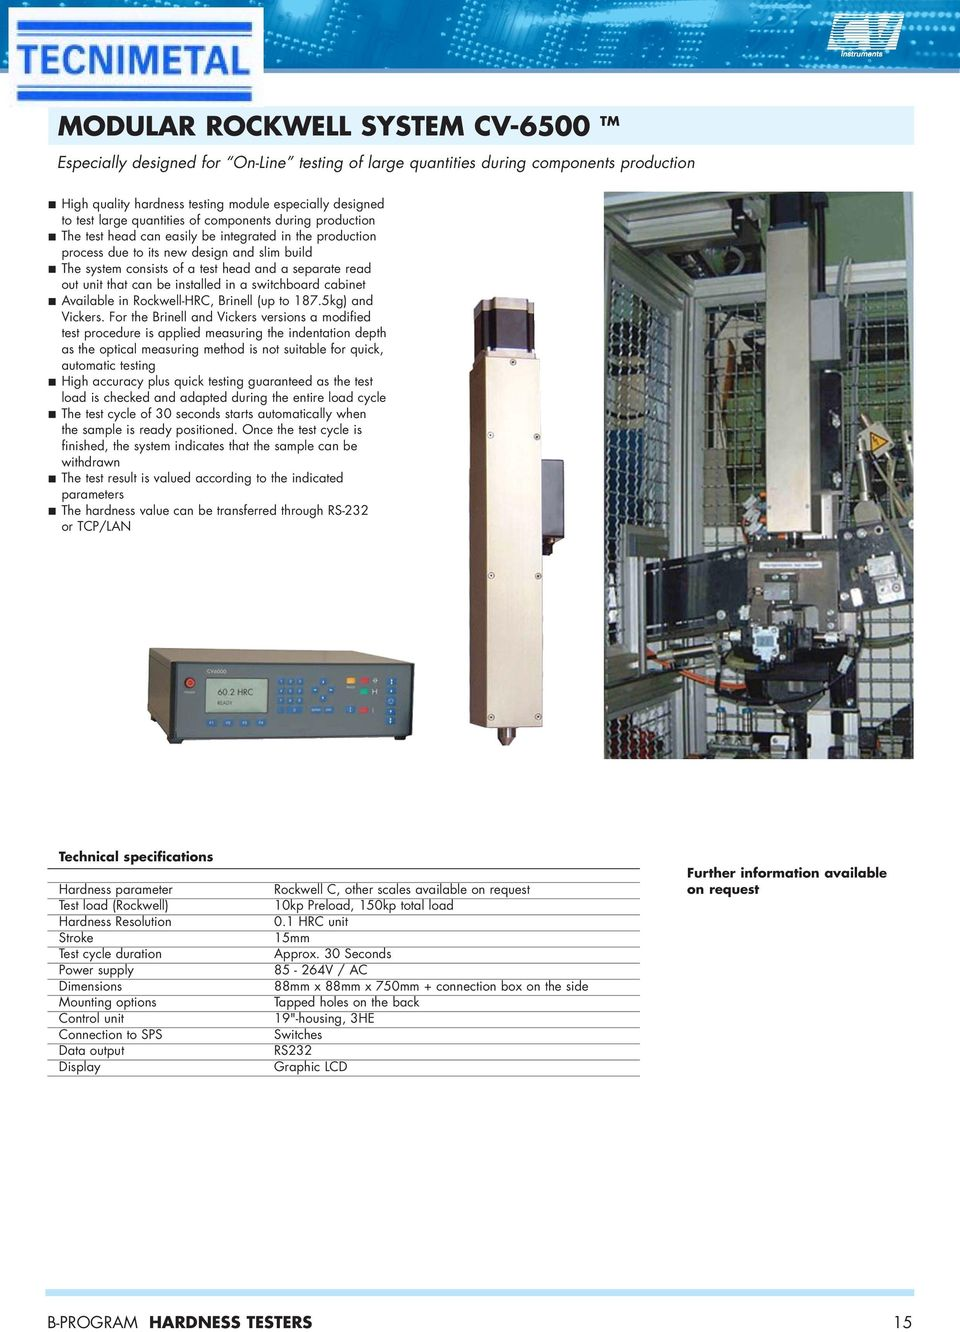 out unit that can be installed in a switchboard cabinet Available in Rockwell-HRC, Brinell (up to 187.5kg) and Vickers.